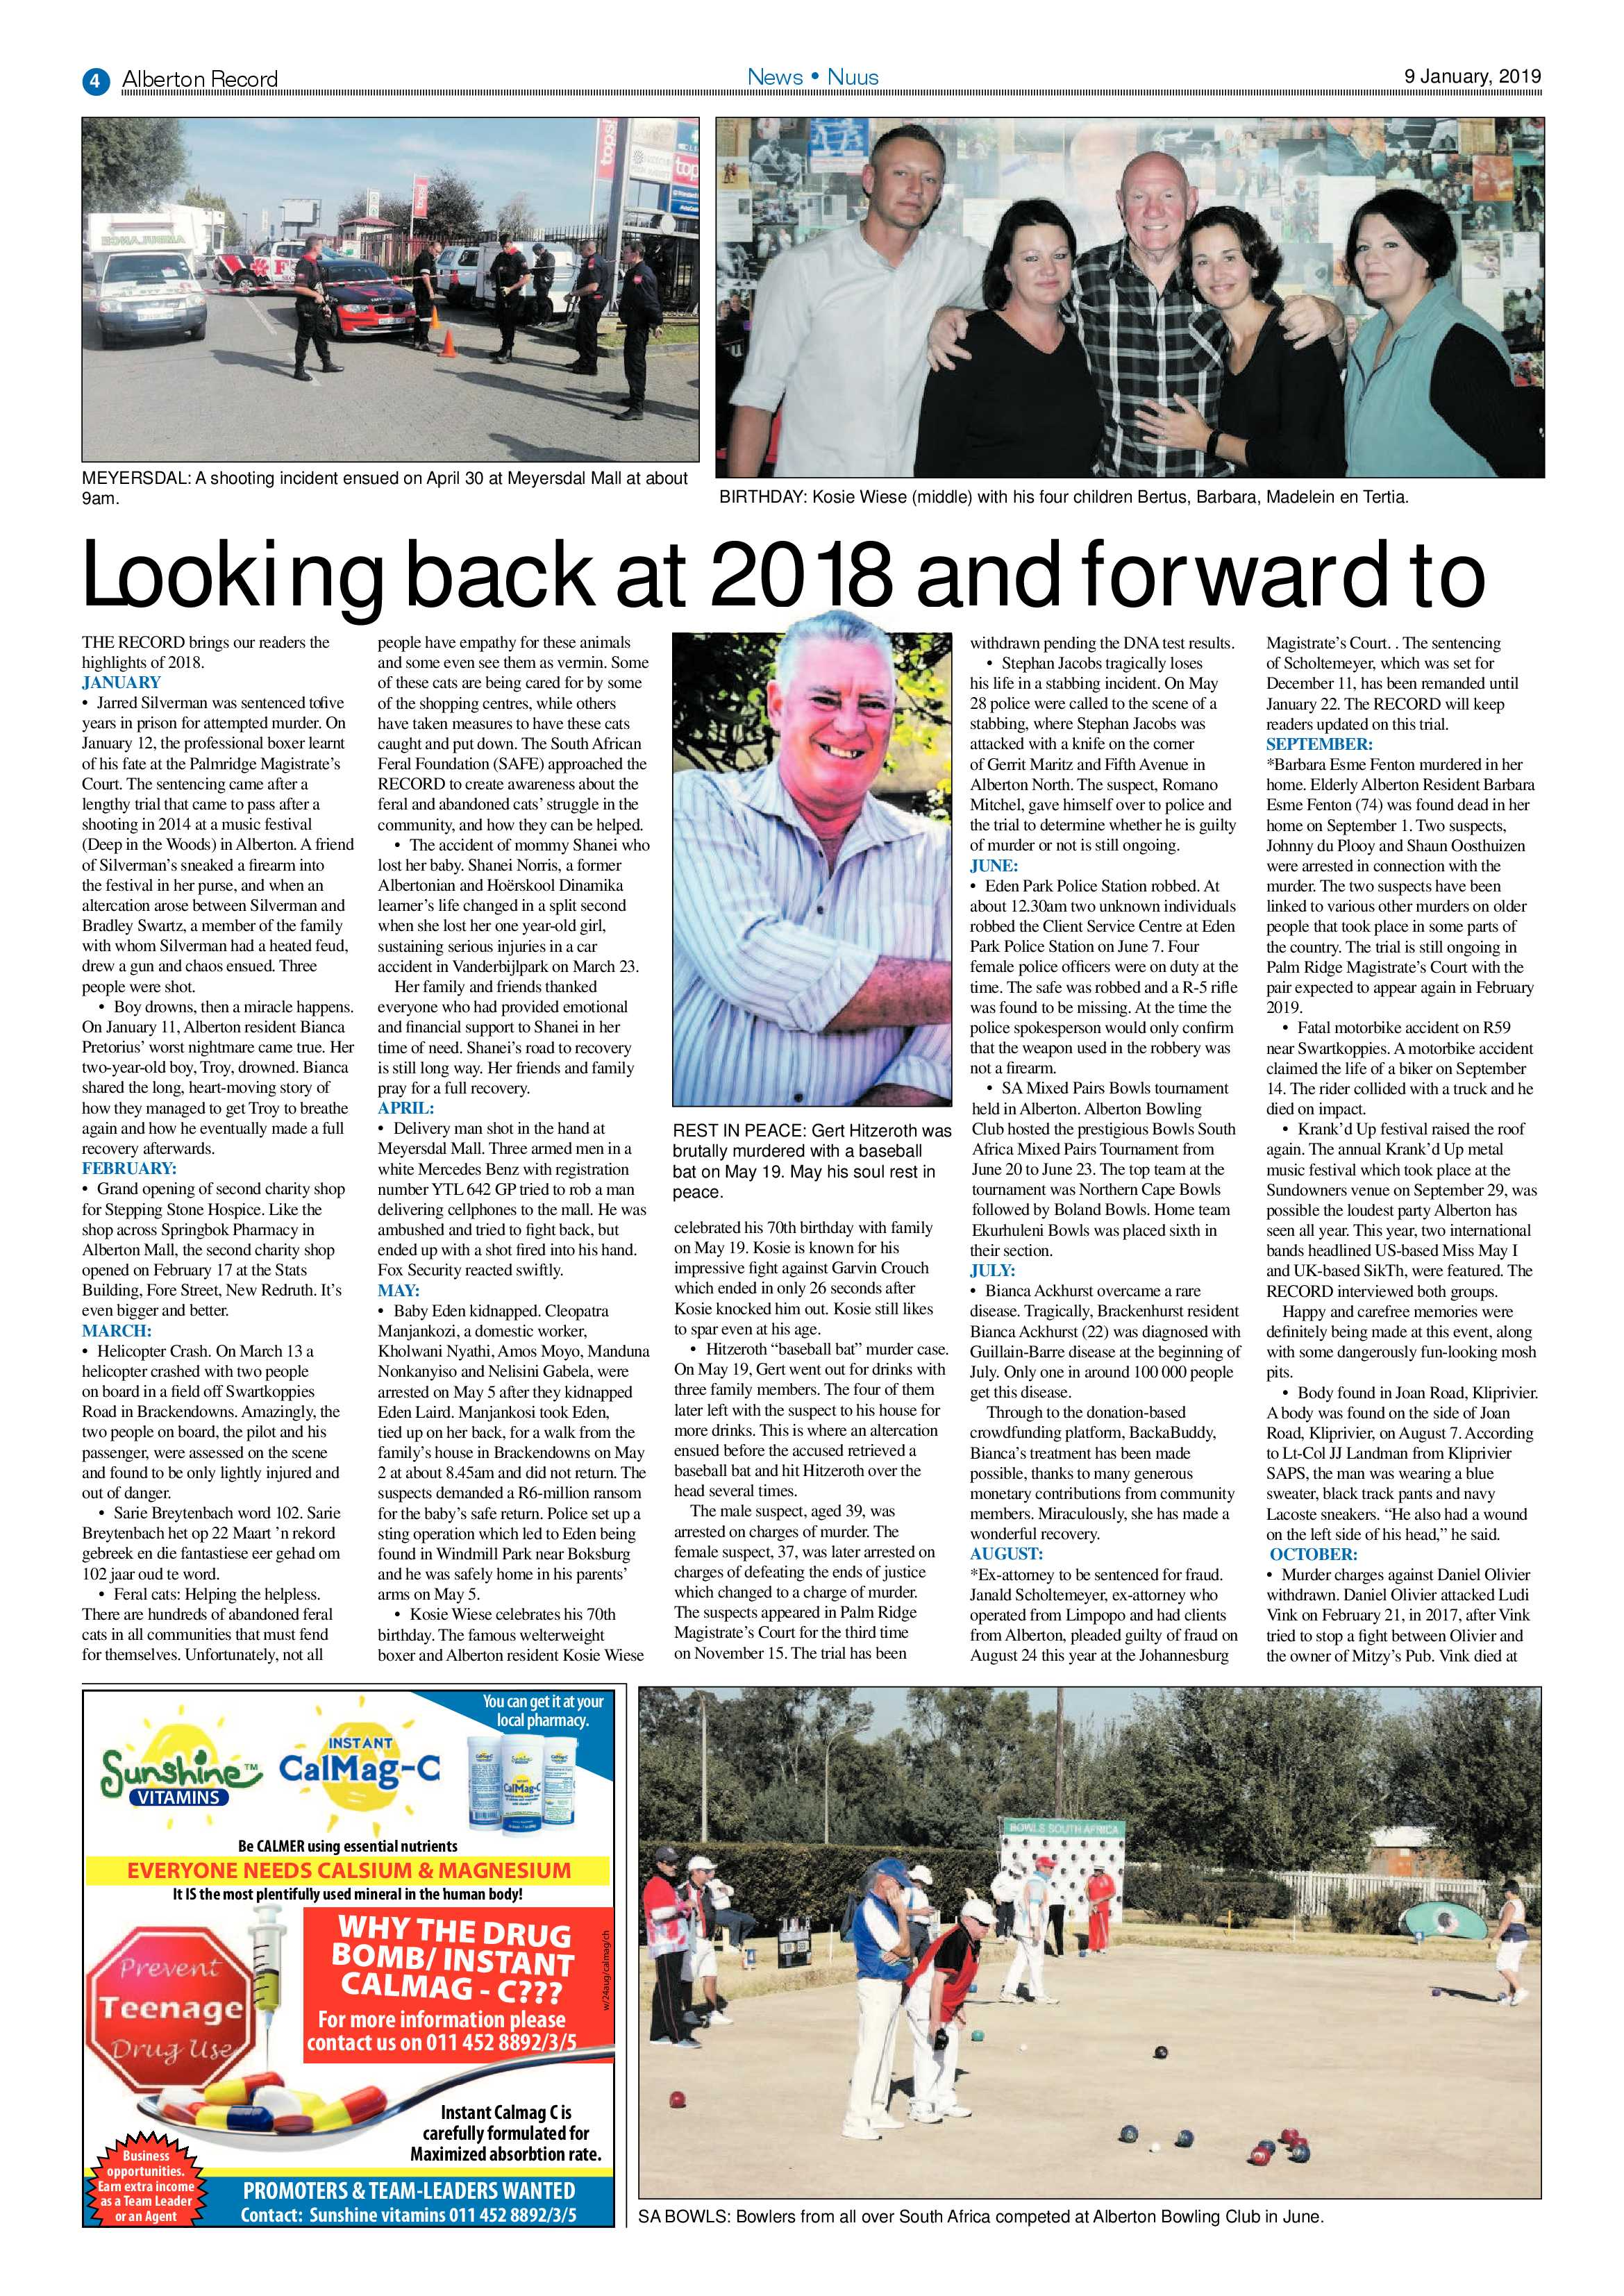 alberton-record-09-january-2019-epapers-page-4